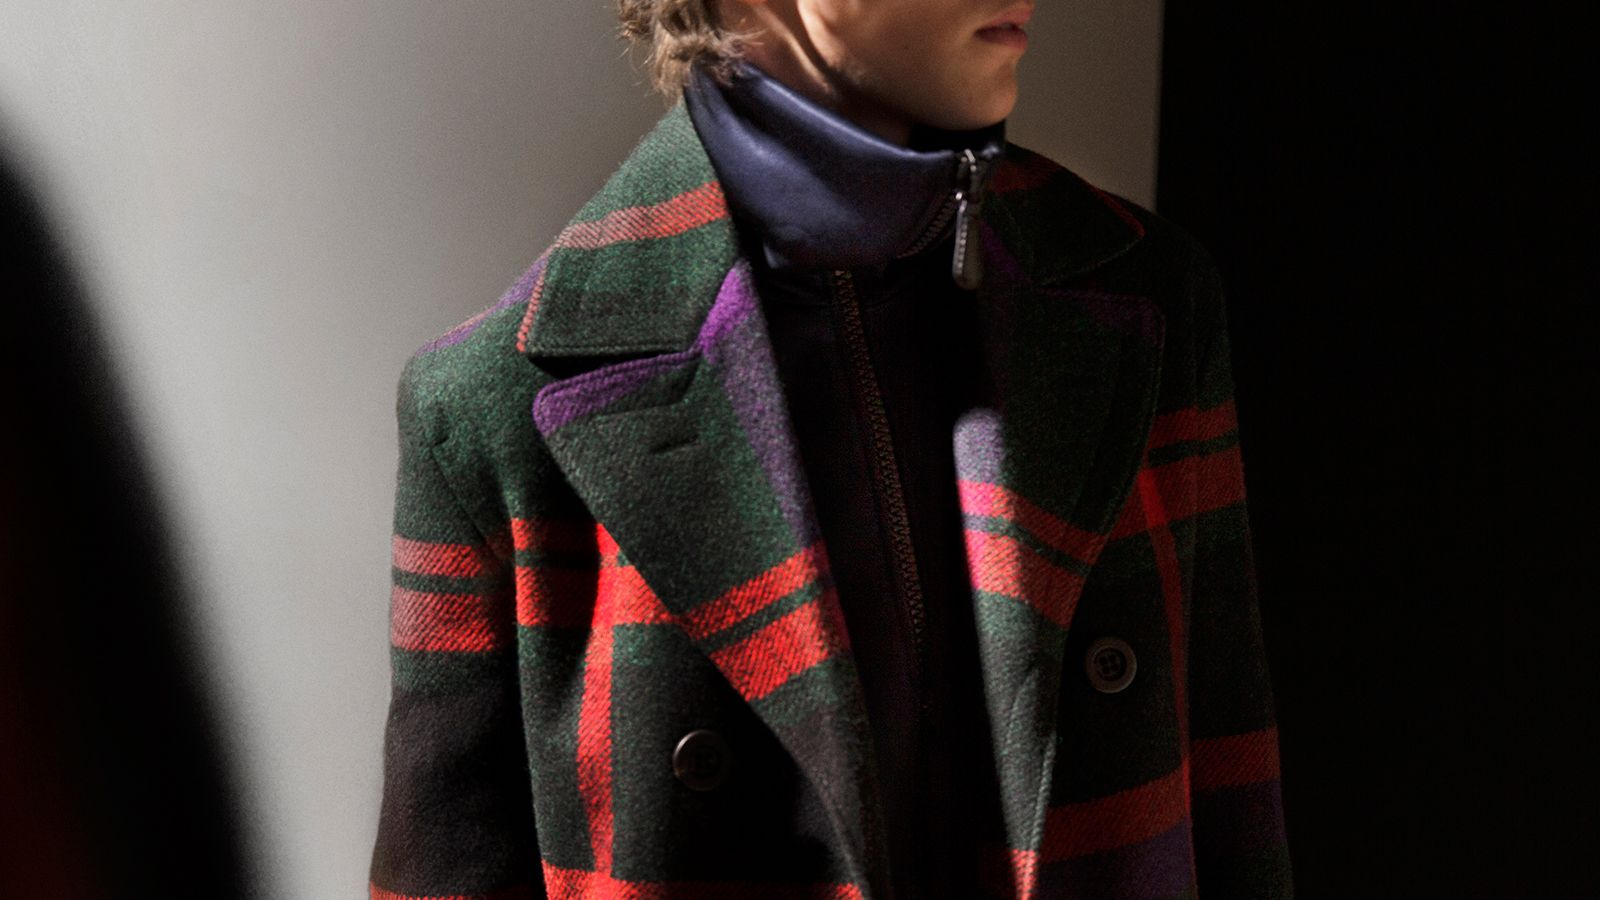 THE CHECK TOPCOAT